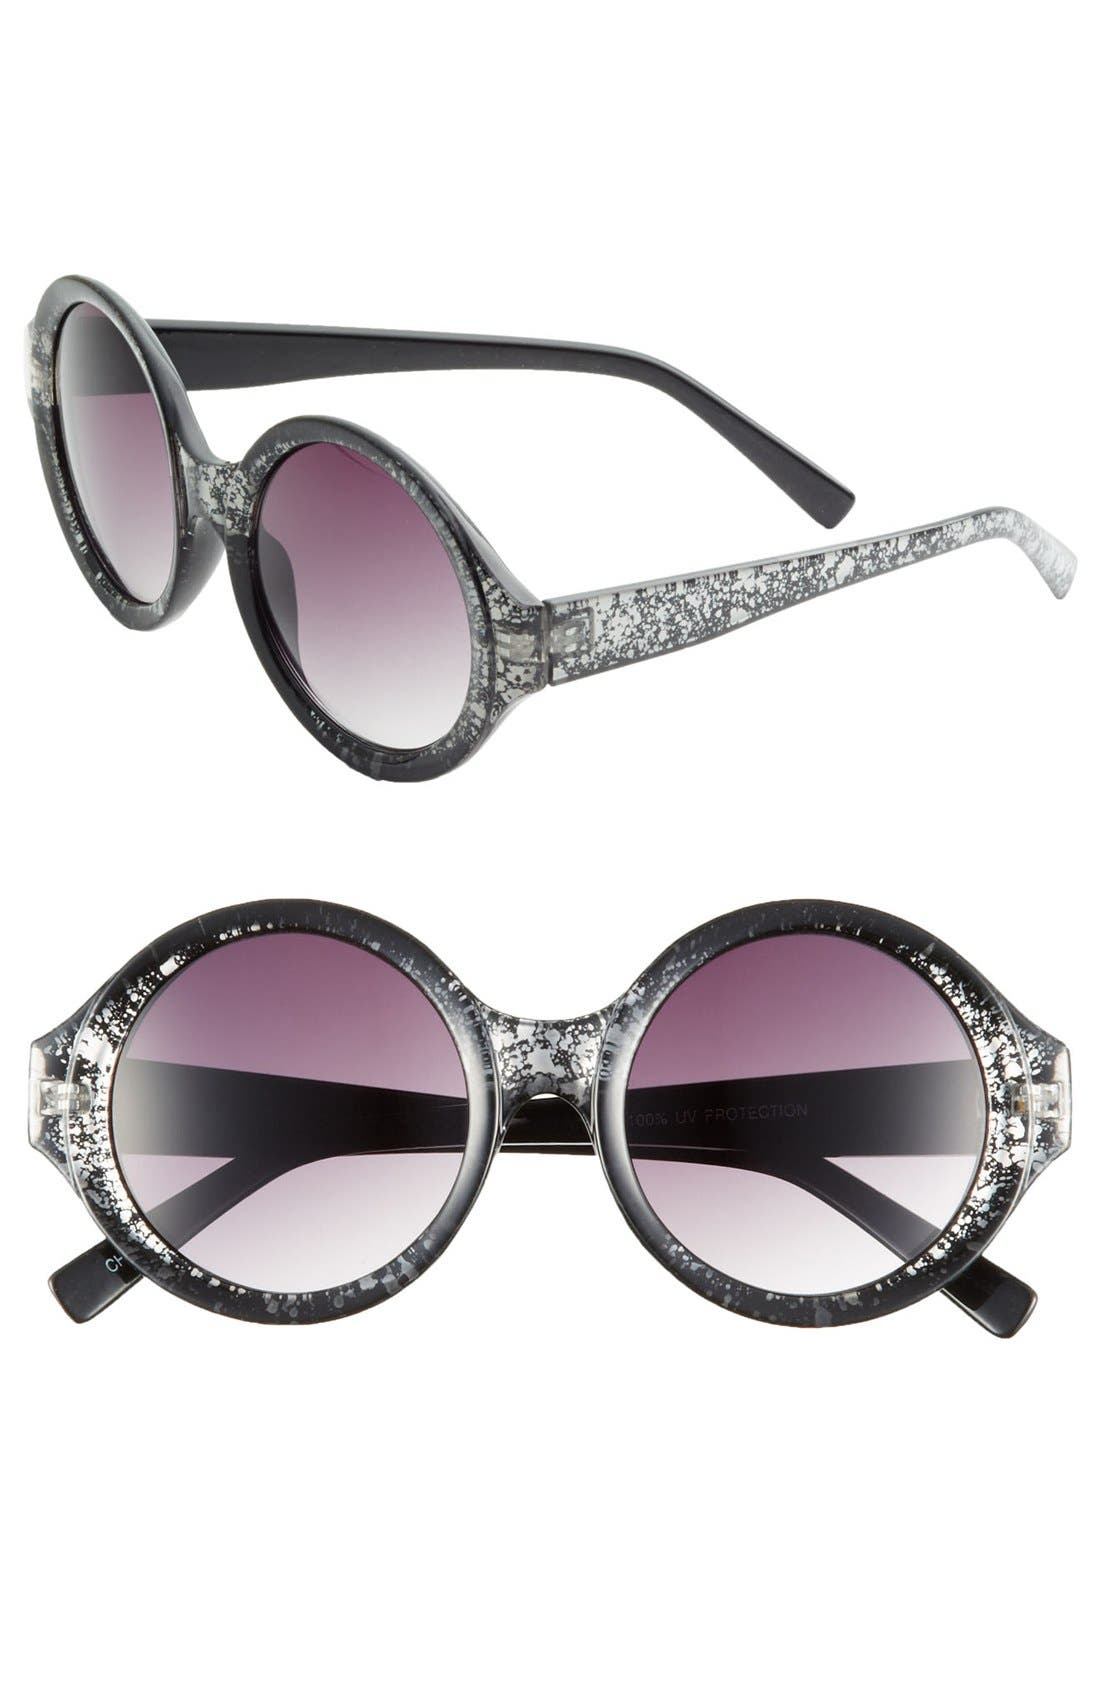 Alternate Image 1 Selected - FE NY 'Crackle' Circle Frame Sunglasses